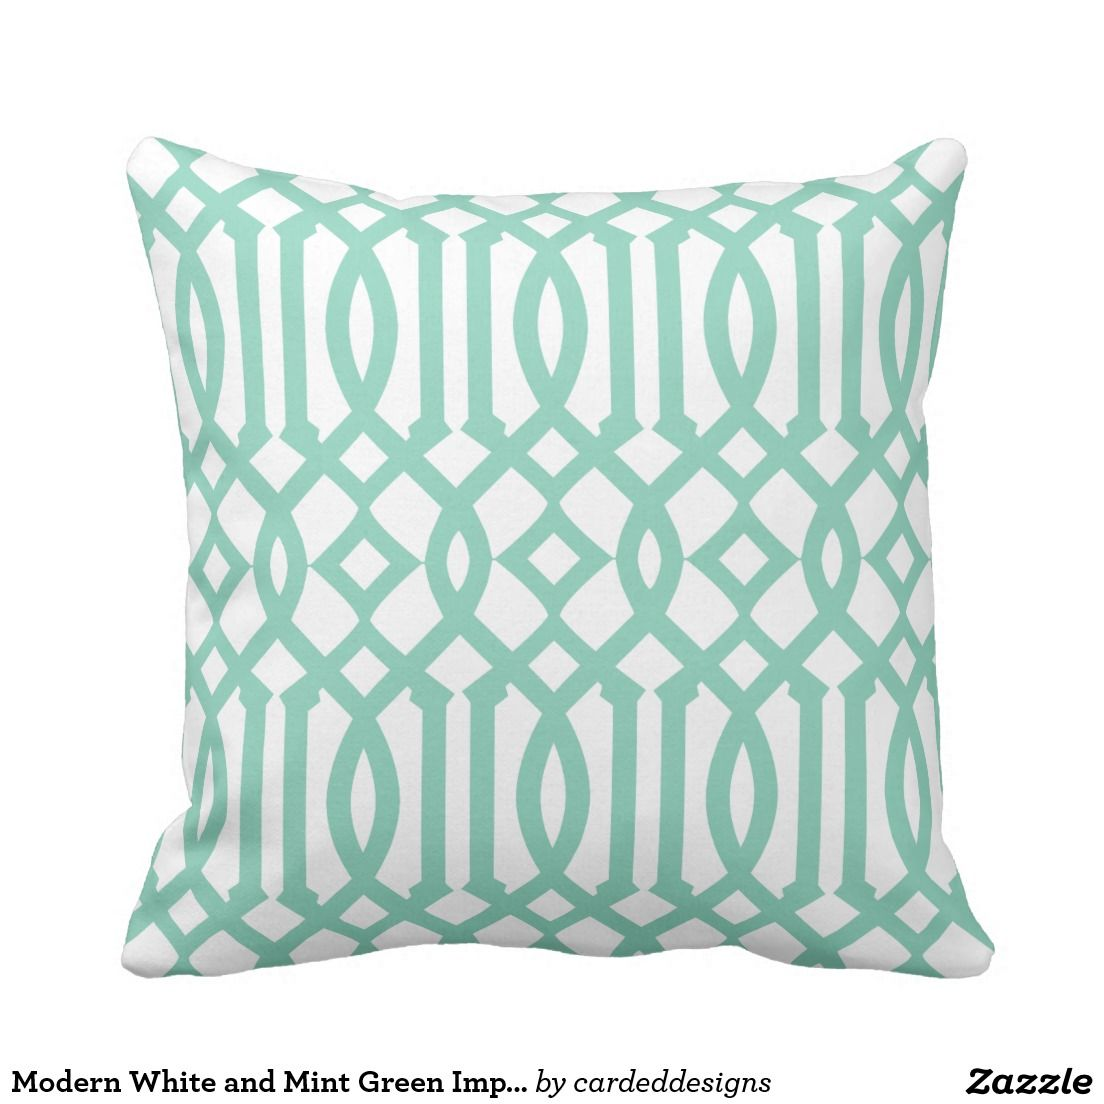 Modern White and Mint Green Imperial Trellis Throw Pillow | Mint ...